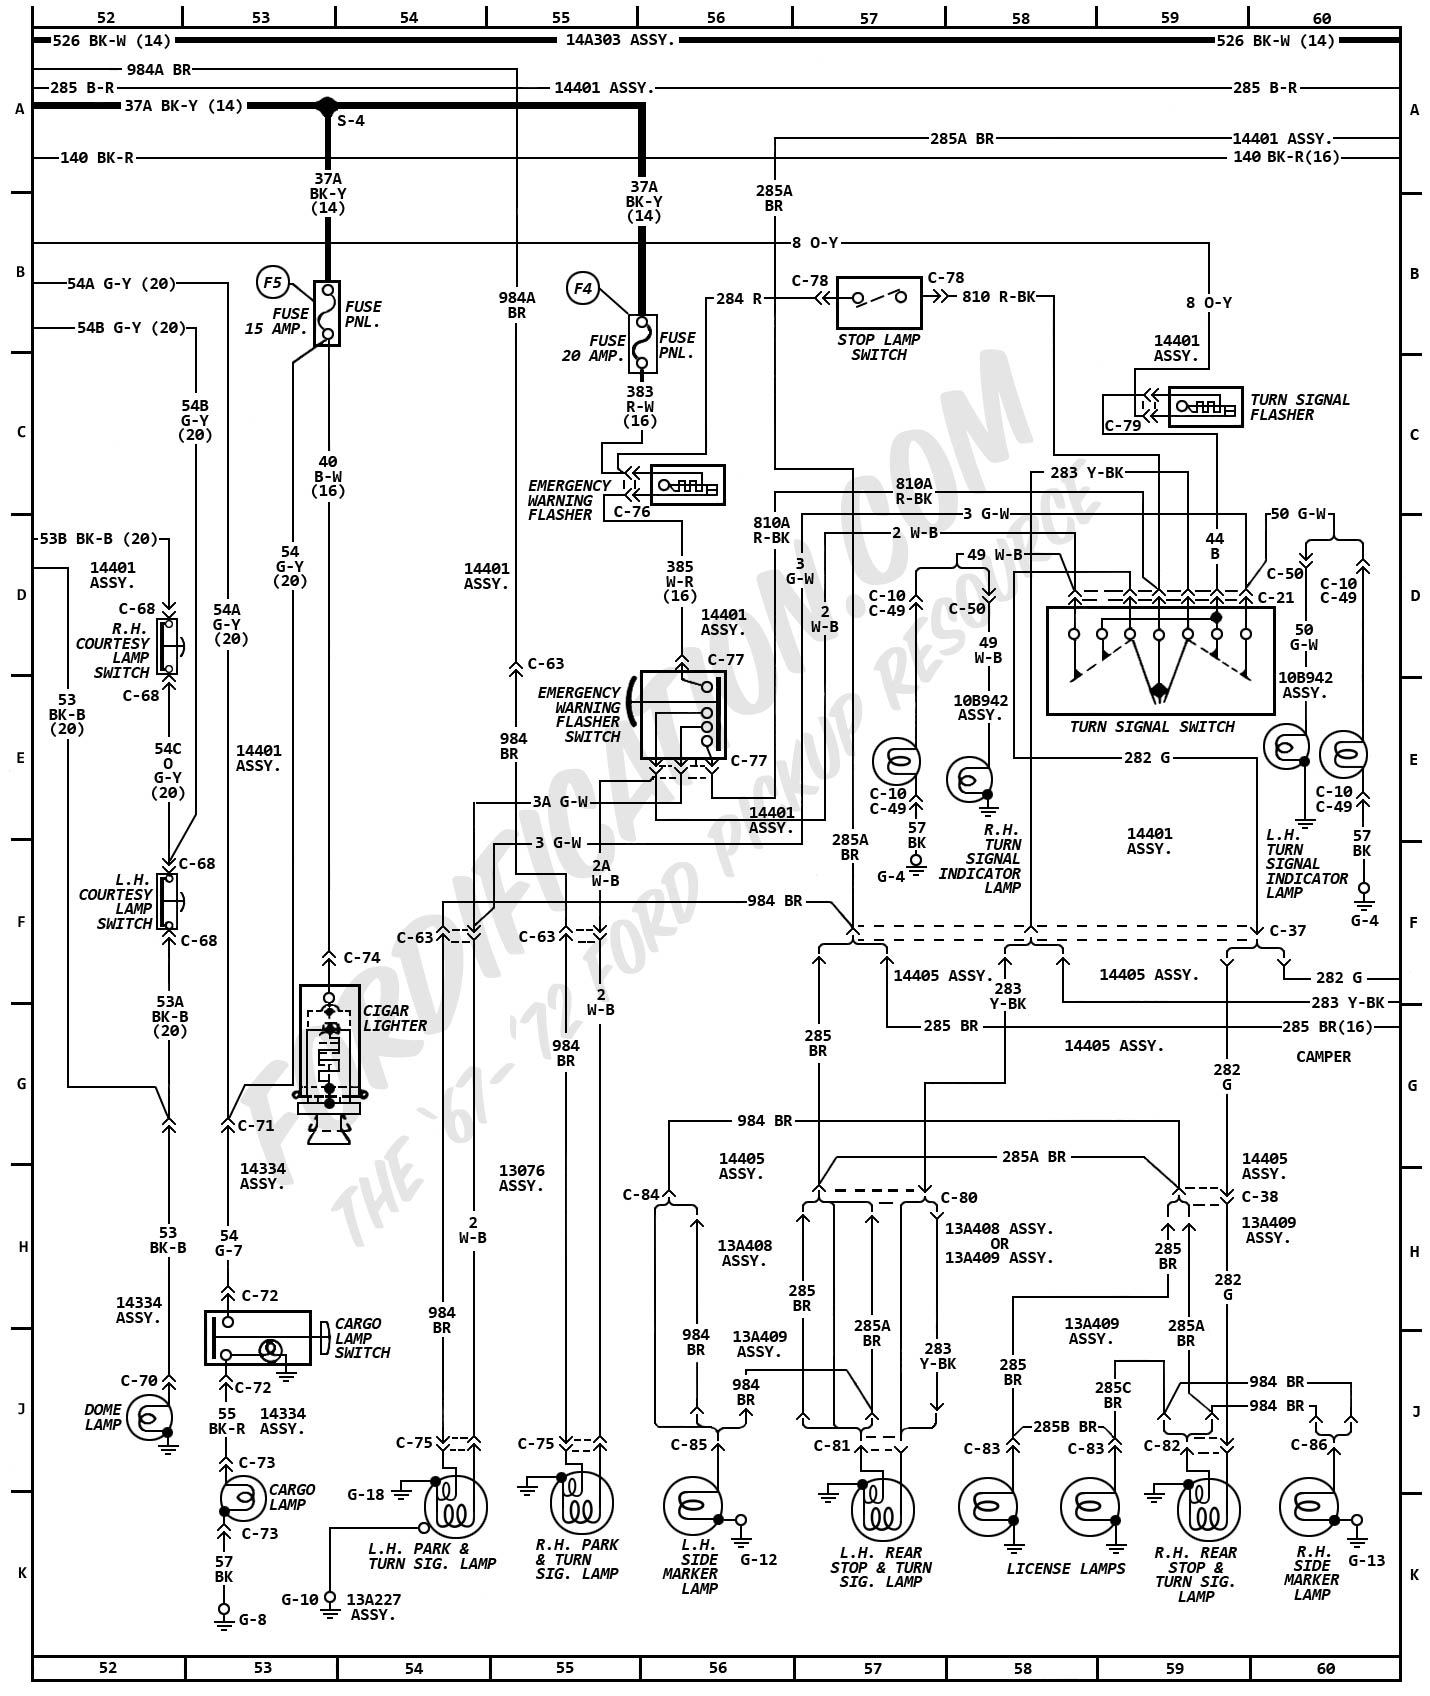 1968 Ford F 250 Starter Wiring Diagram Reveolution Of Truck Wire 350 Diesel 94 1972 F250 Ignition Simple Rh David Huggett Co Uk 1969 2001 Super Duty